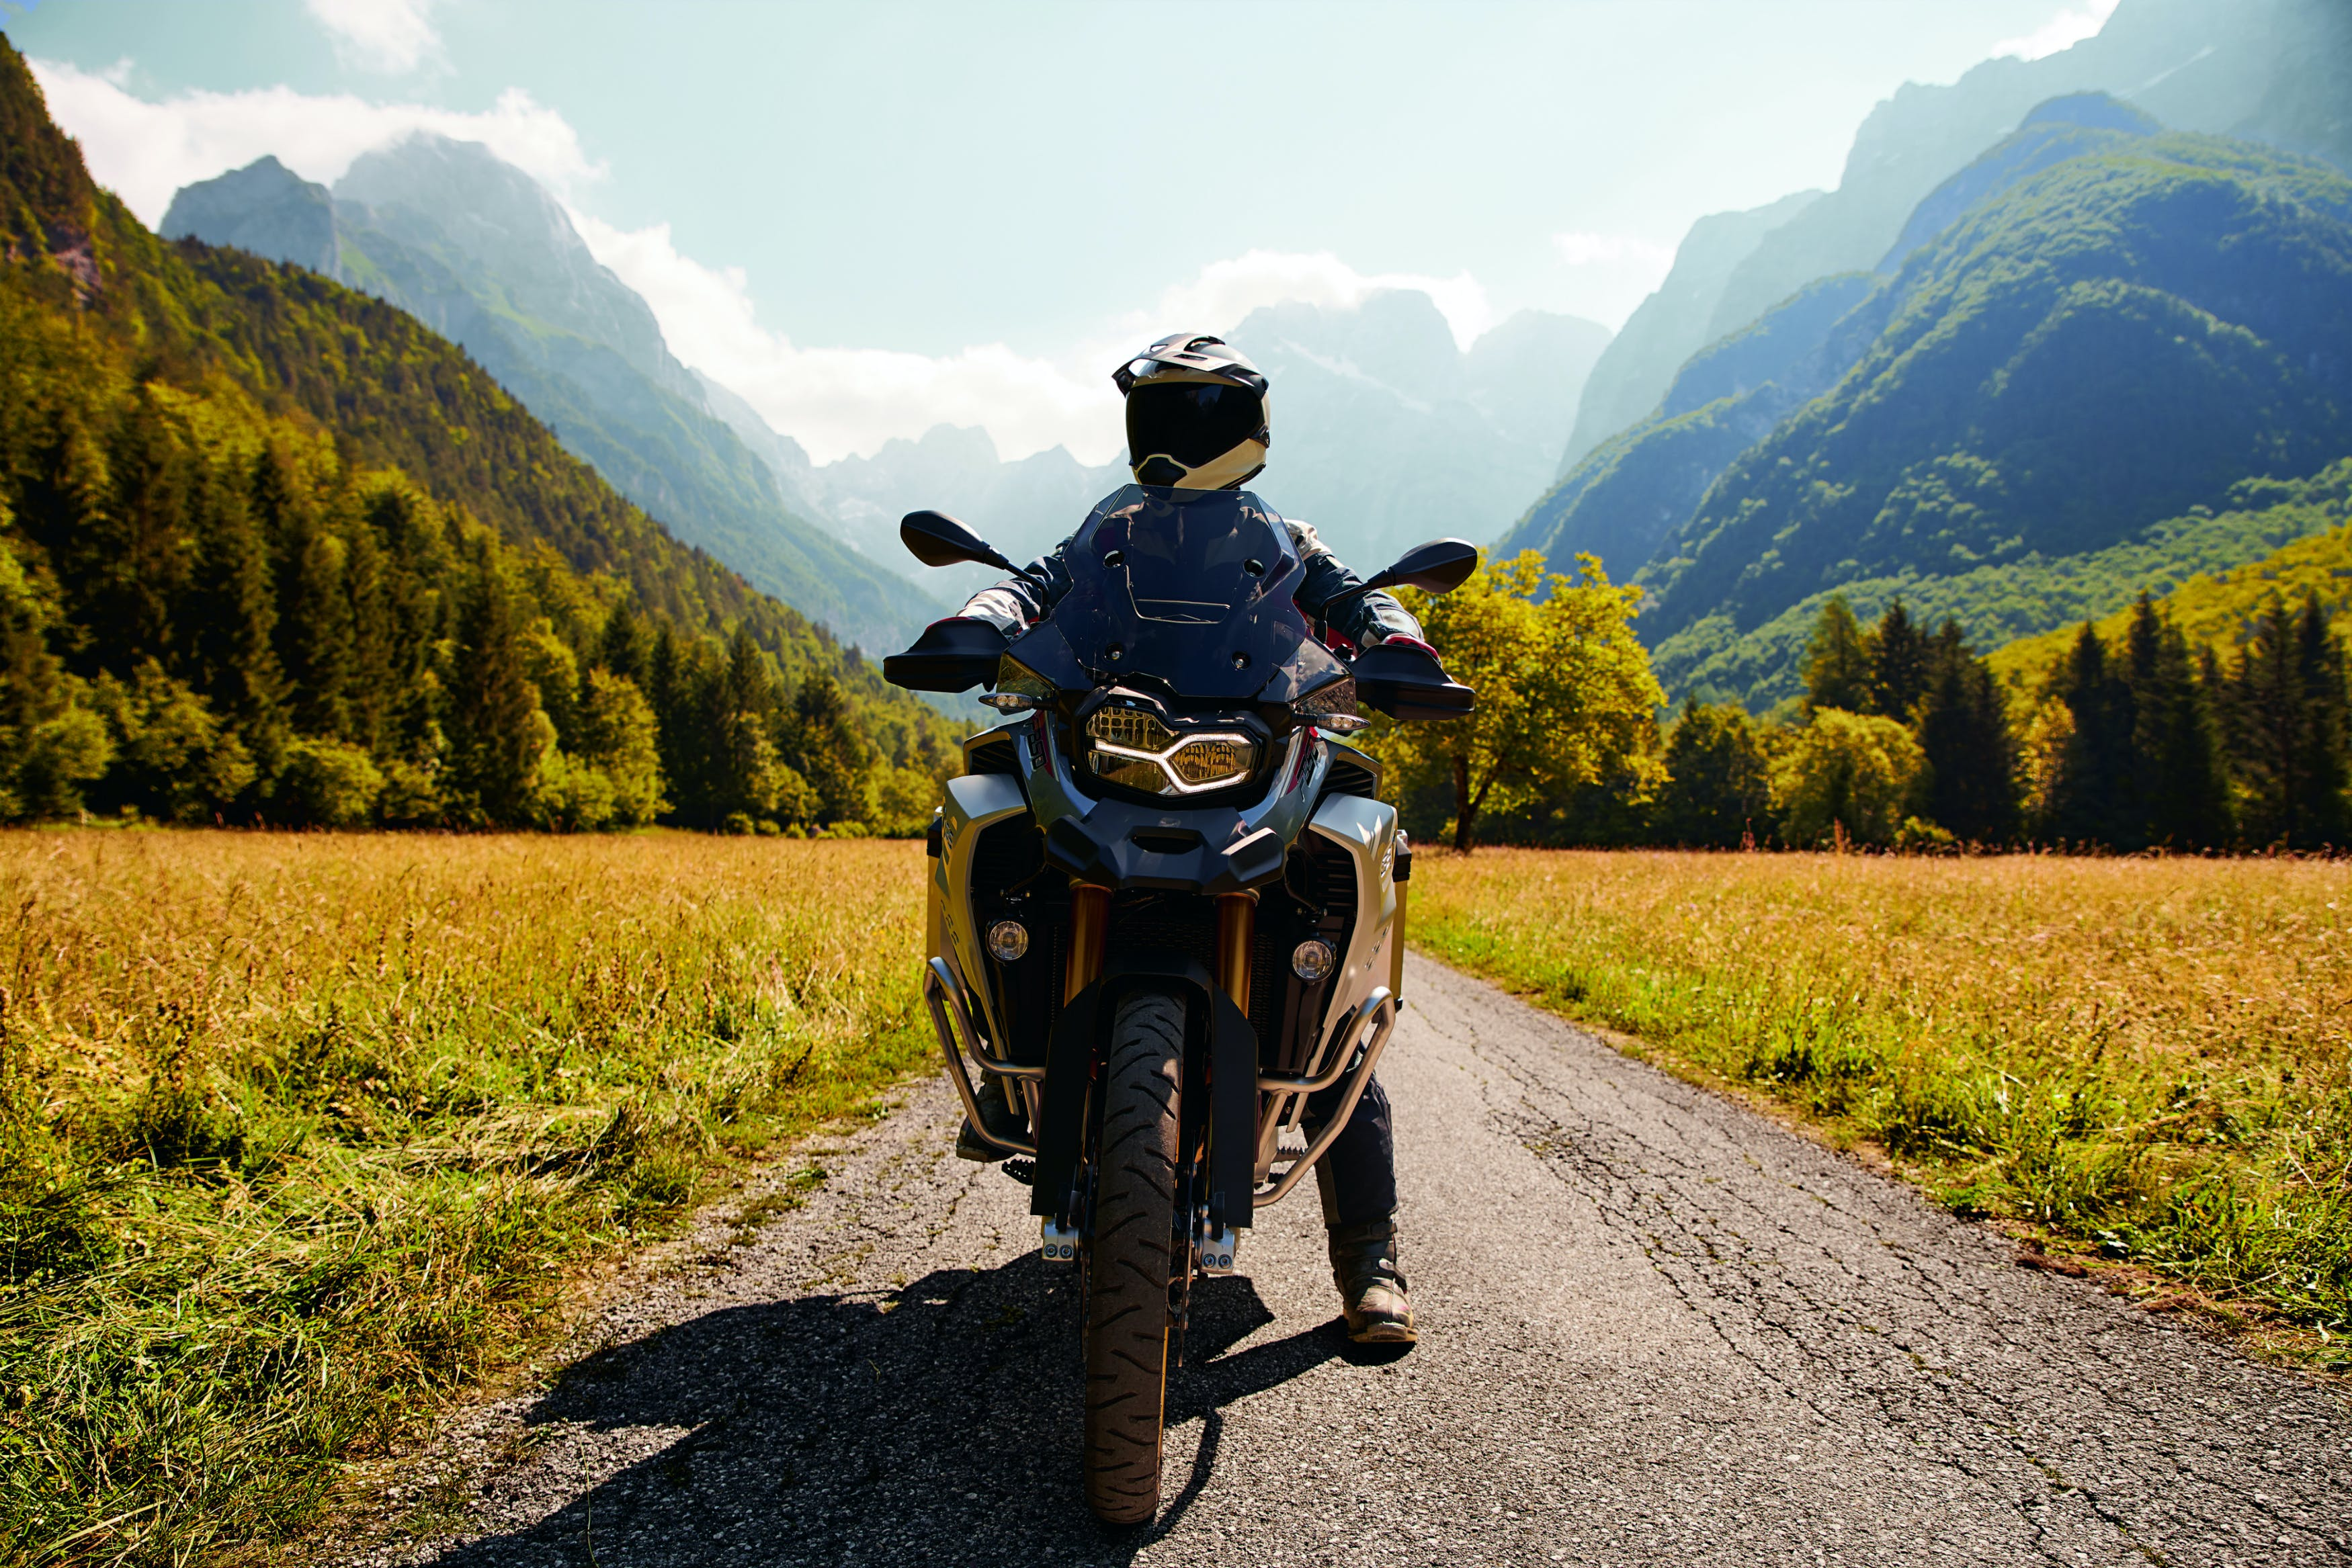 BMW F 850 GS ADVENTURE RALLYE X motorcycle being ridden on a hill road